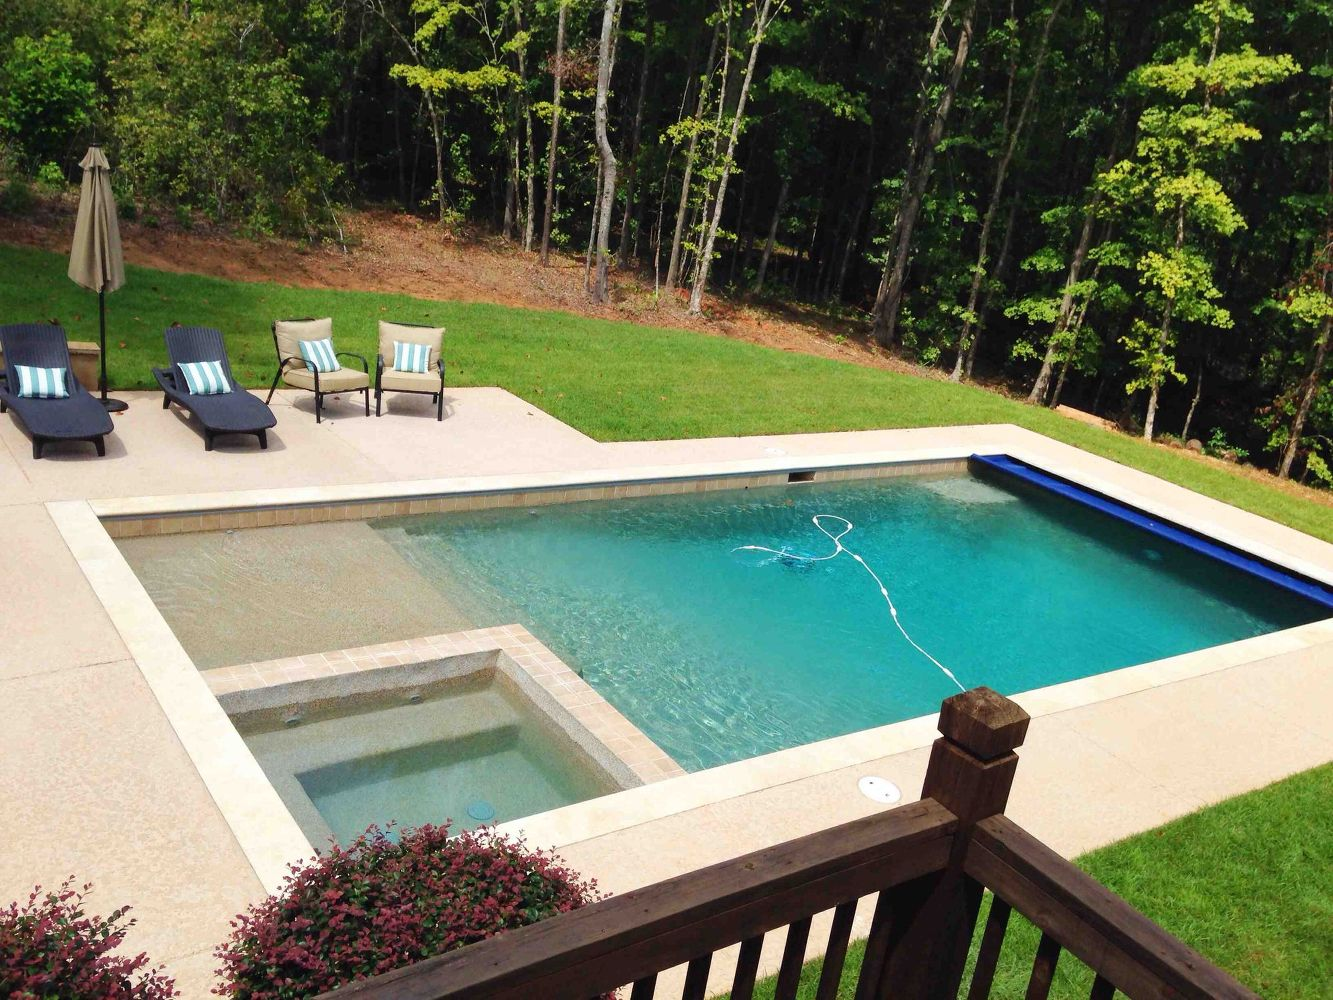 Yard edging best images collections hd for gadget for Best pool designs 2016